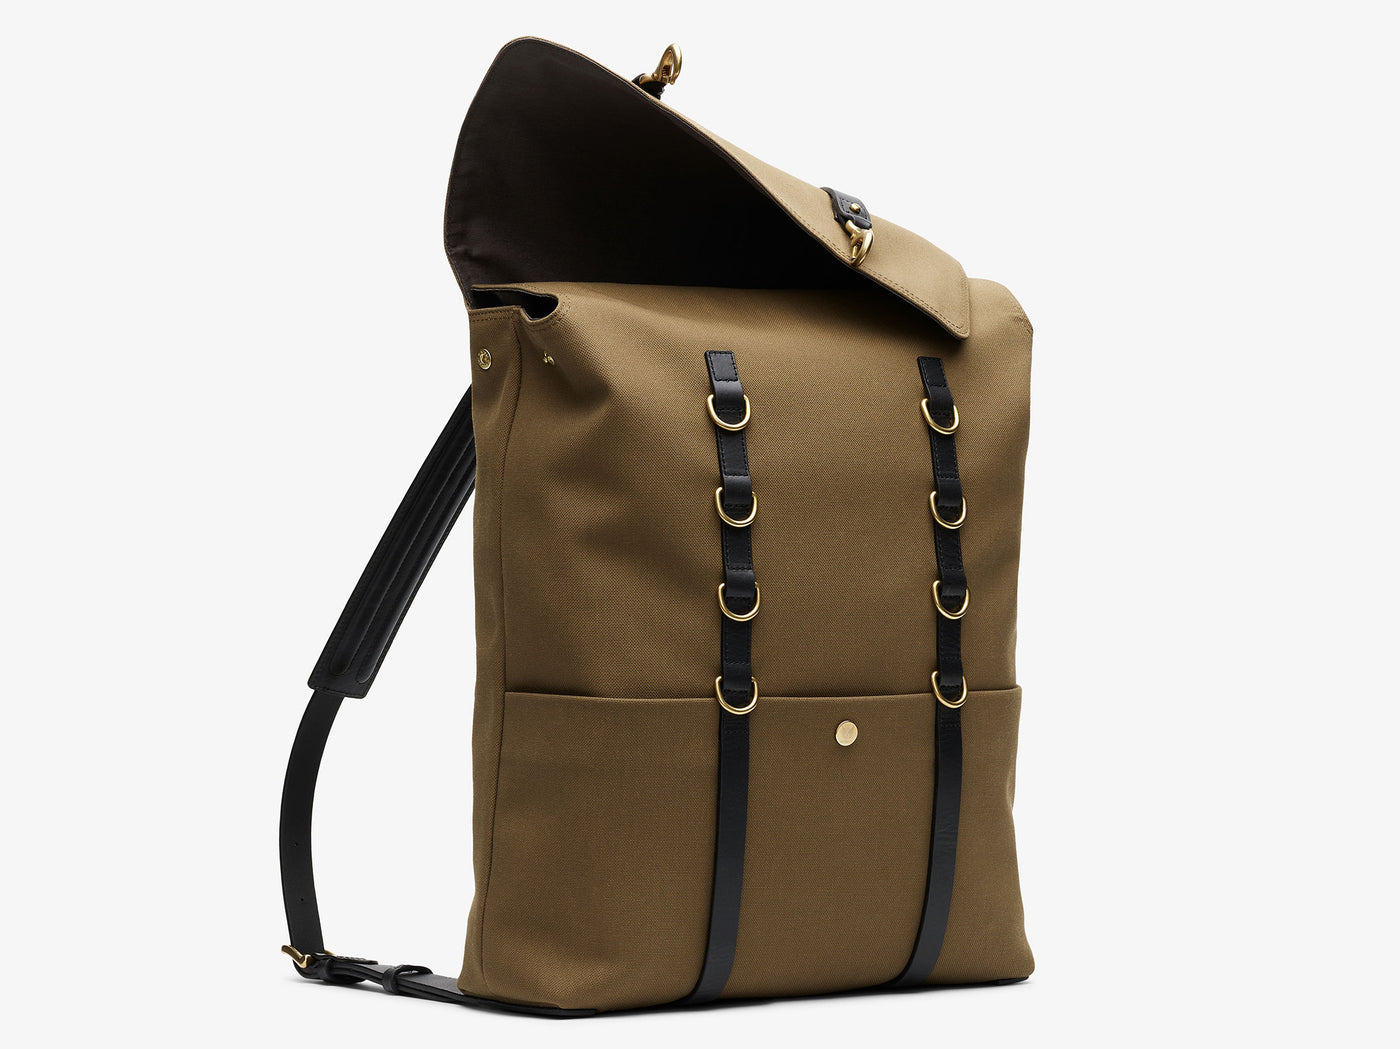 M/S Backpack - Khaki/Black